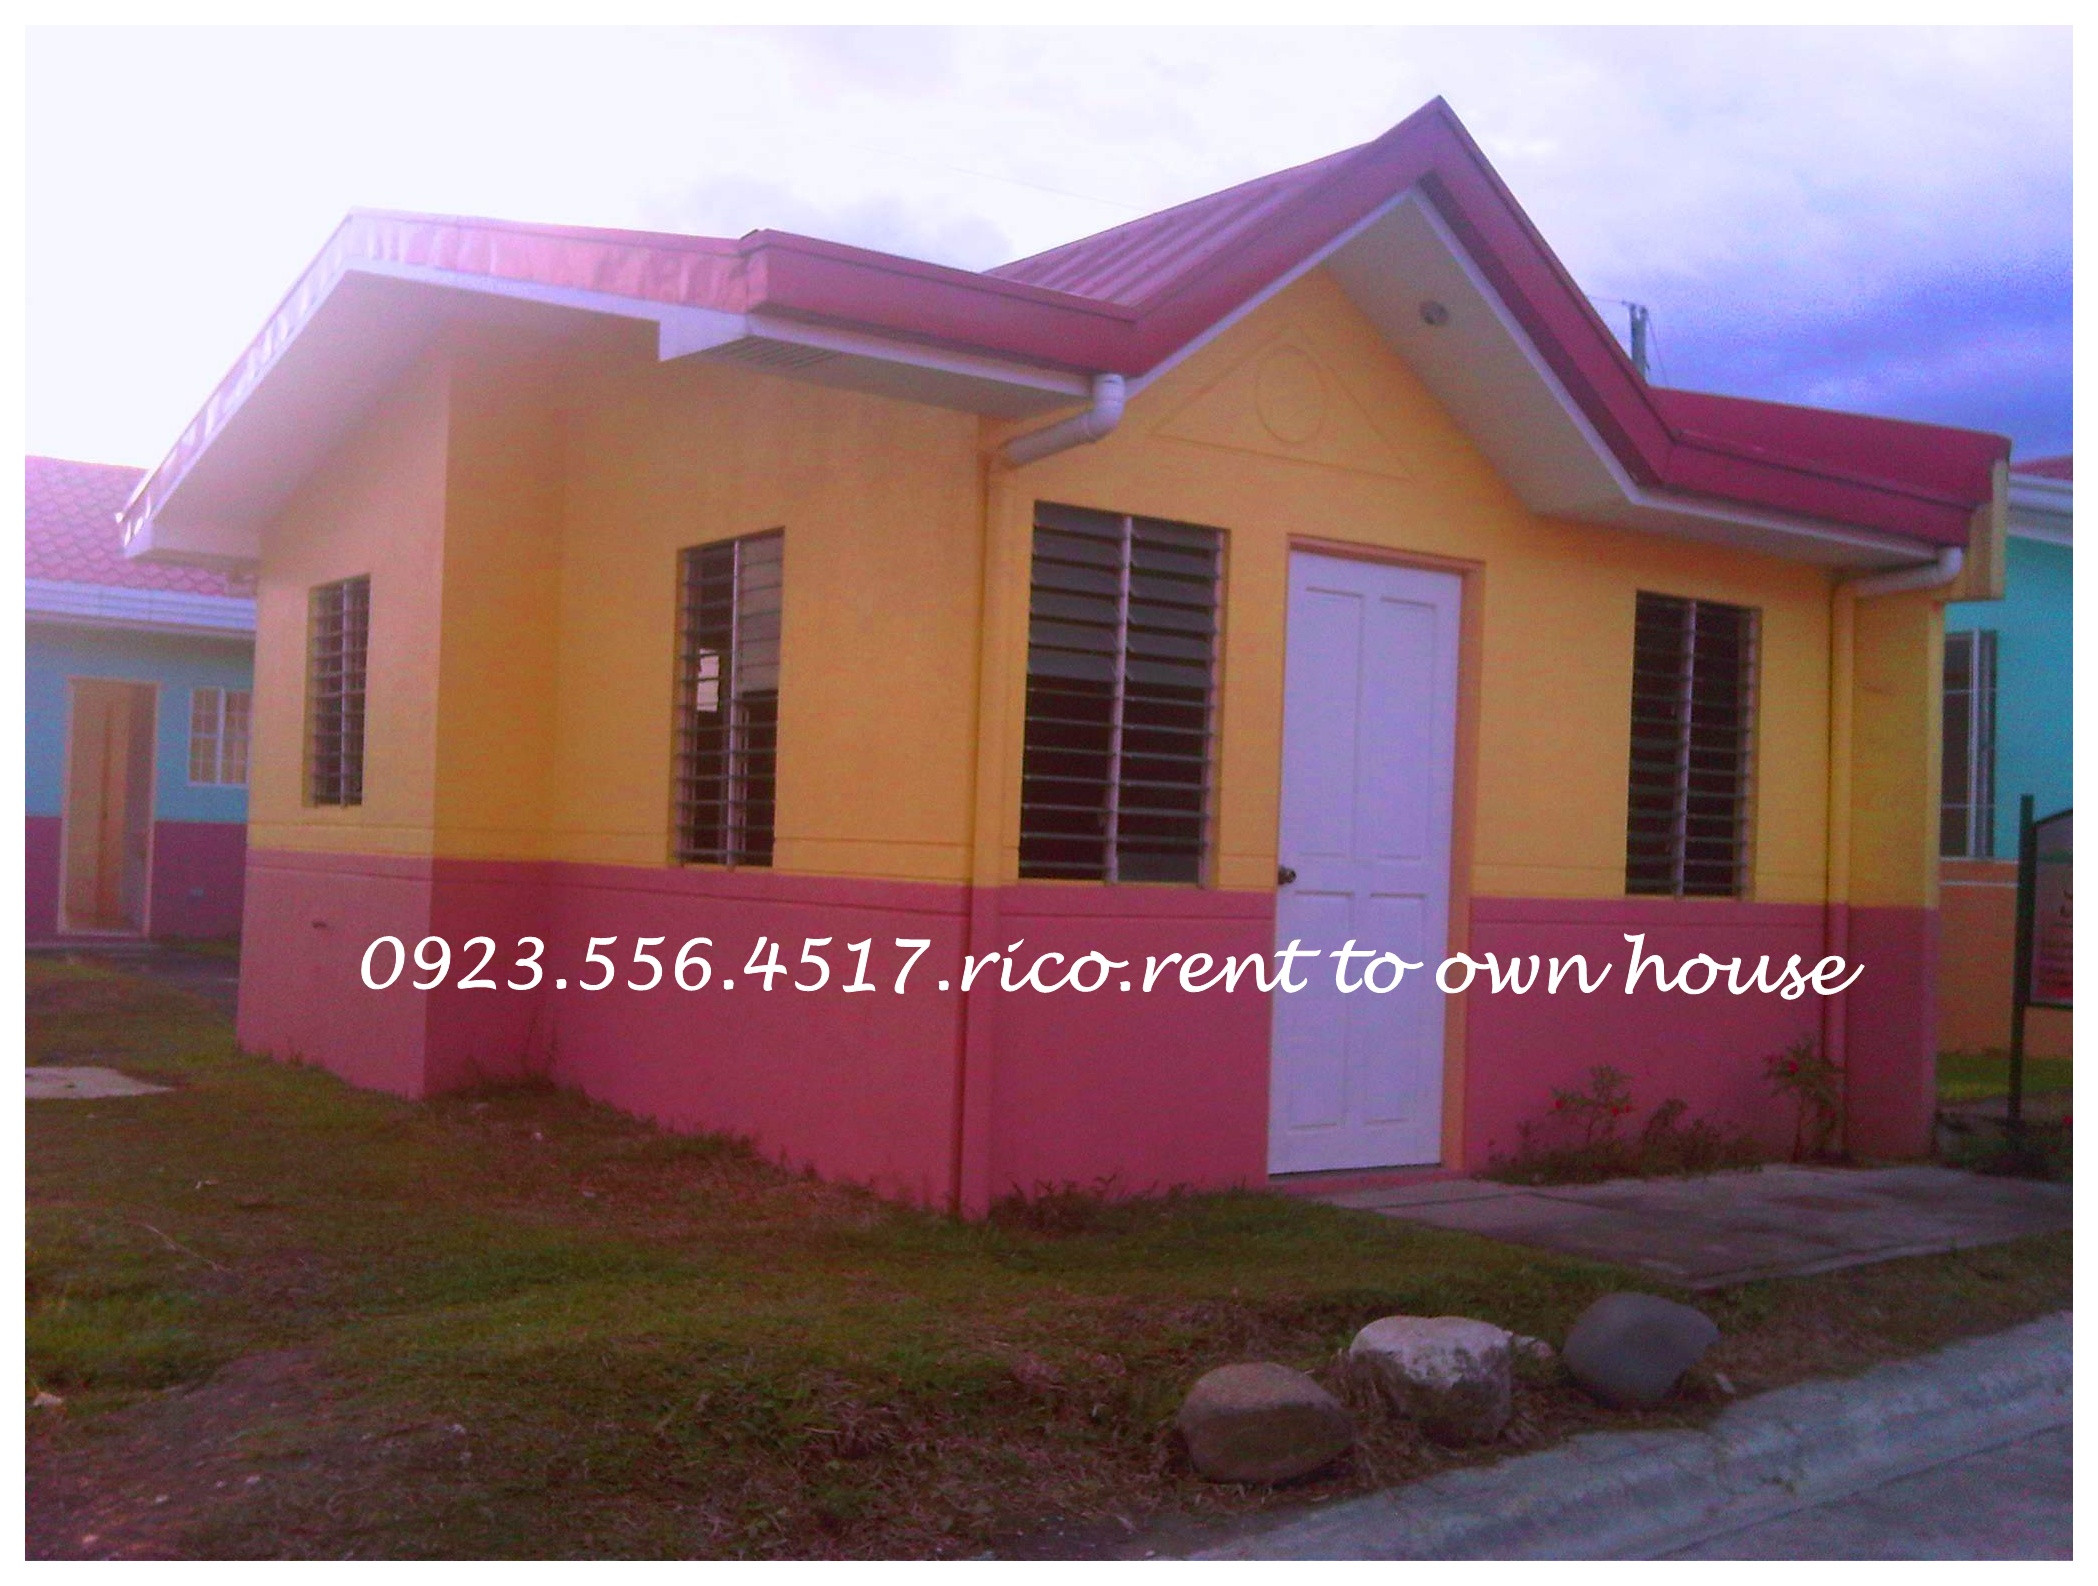 RODRIGUEZ RIZAL HOUSE AND LOT FOR SALE RENT TO OWN SINGLE ATTACHED AFFORDABLE NEAR EDSA MRT QUEZON CITY RICO 0923 556 4517